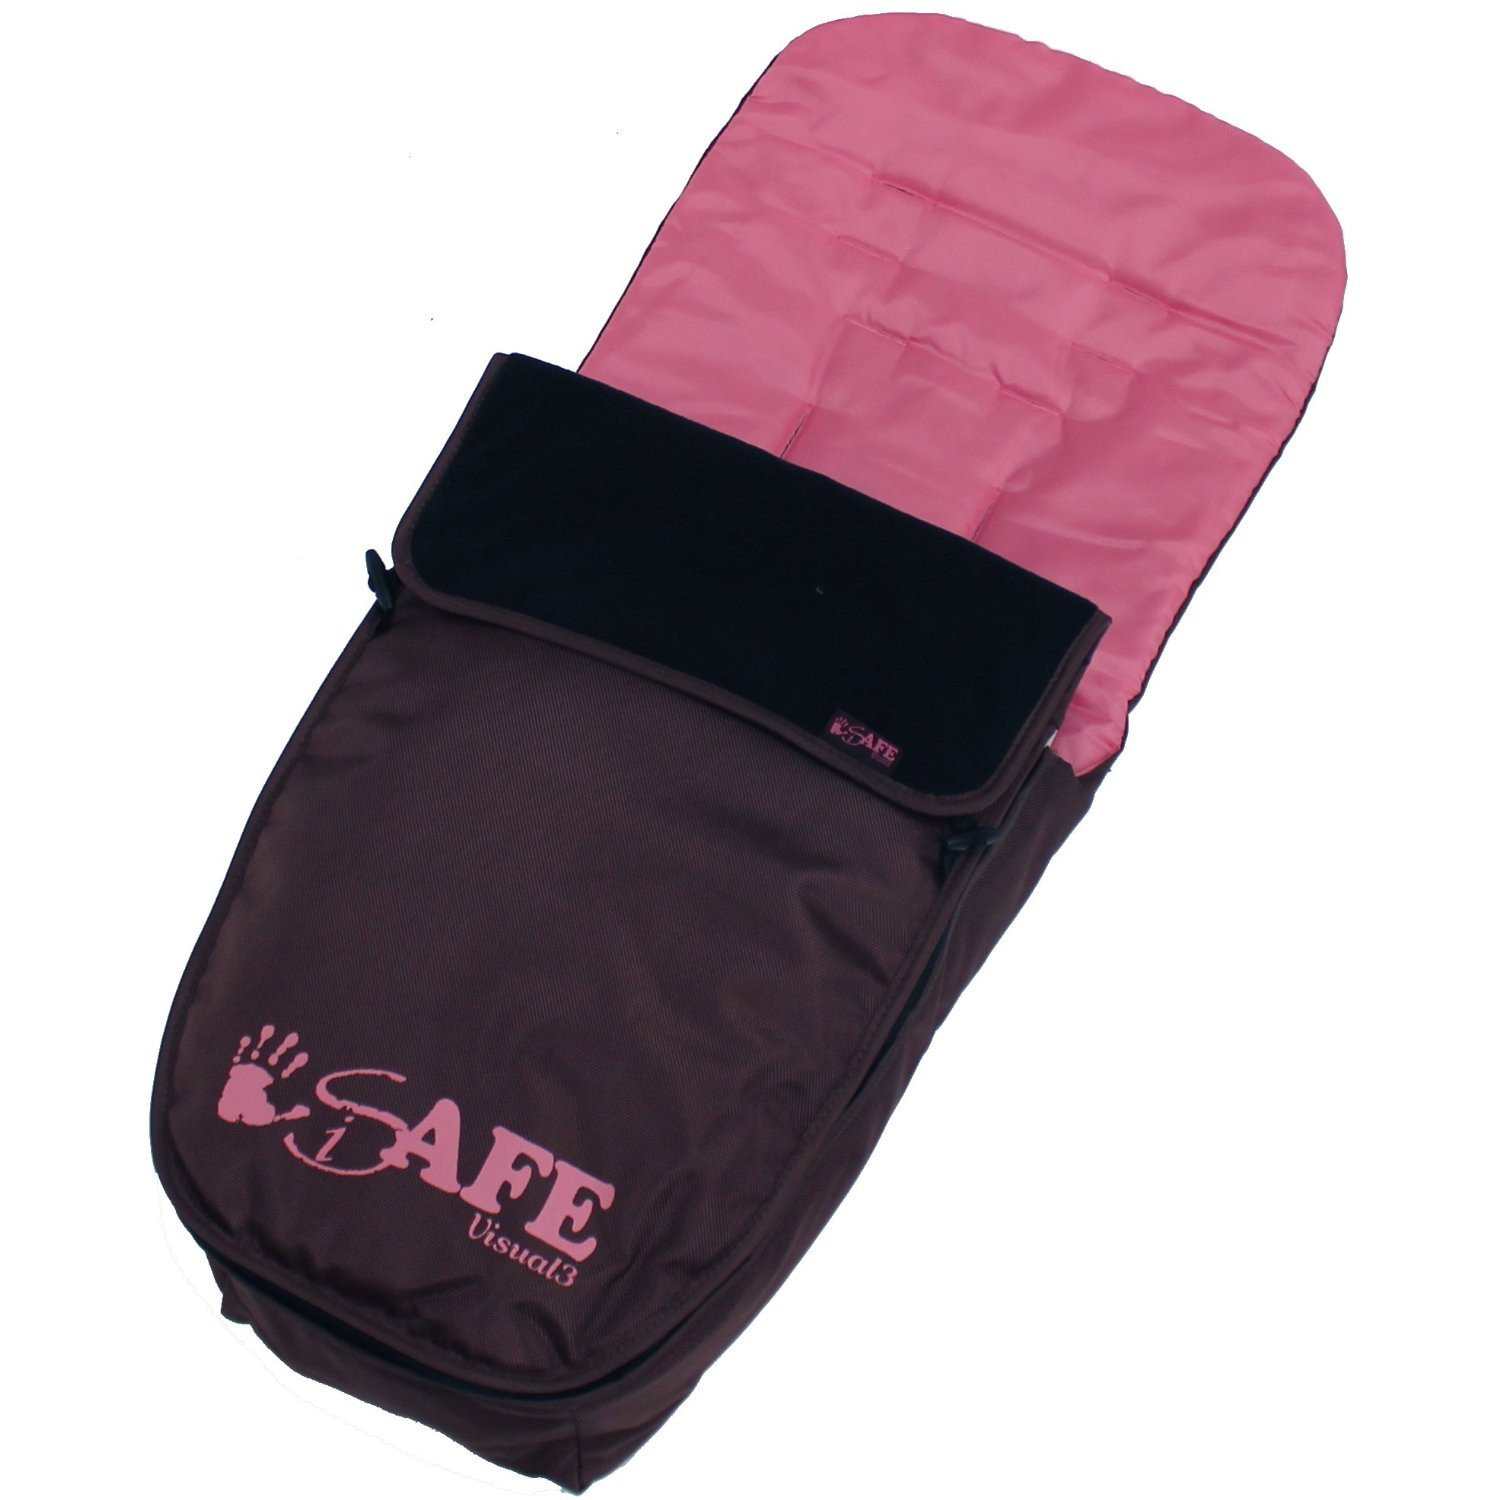 Bootcover 2017 iSafe Visual 3 -Raspberry Pink Complete with Bumper Bar Travel Bag Foot Muff Rain Cover